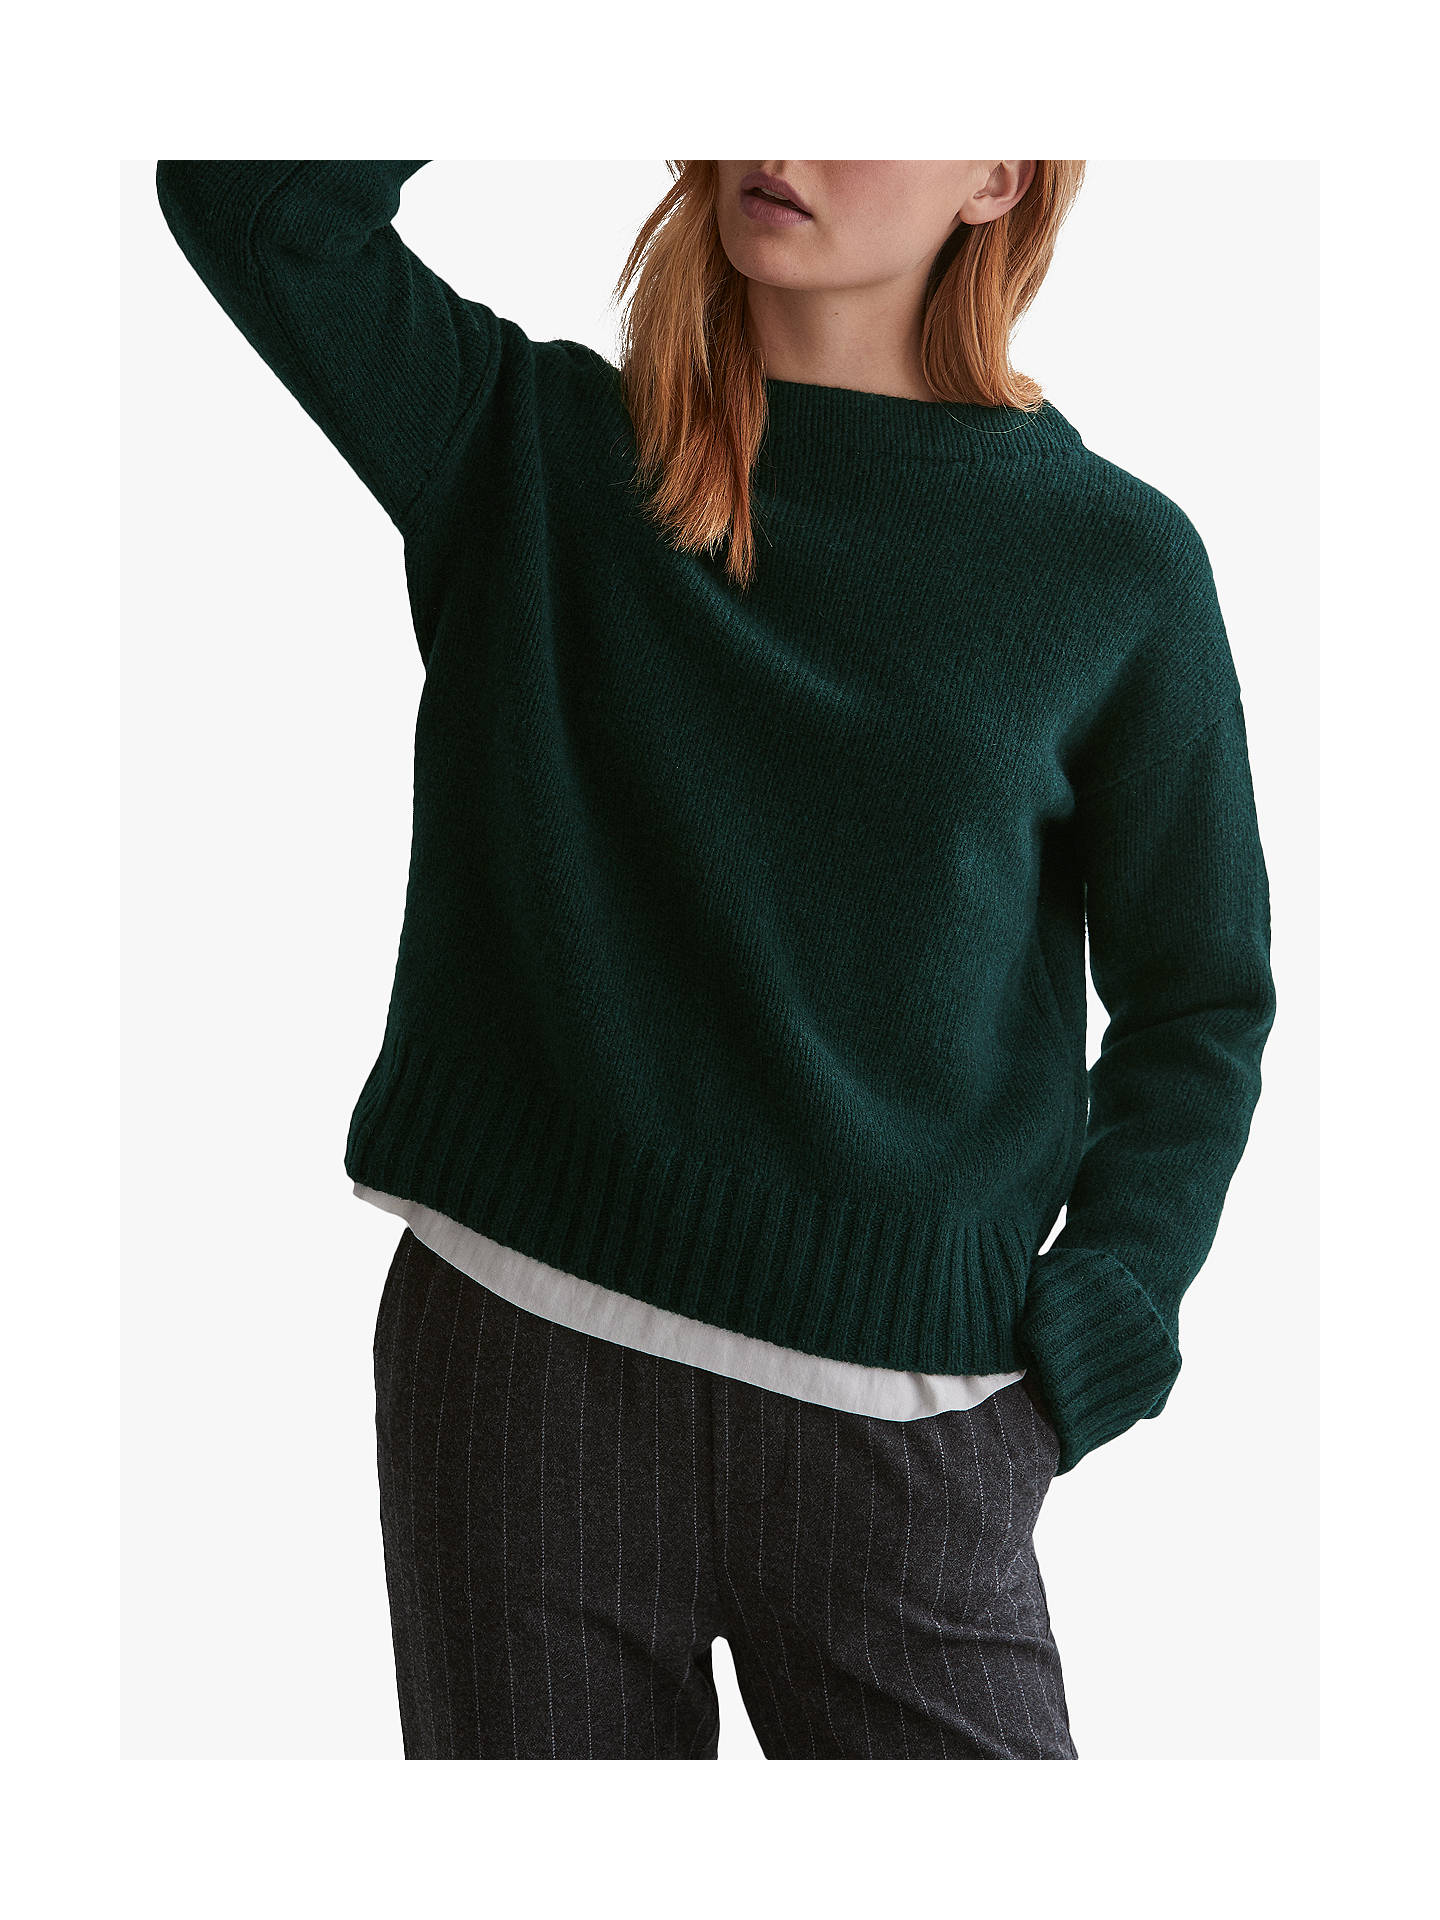 BuyToast Soft Merino Easy Sweater, Forest Green, S Online at johnlewis.com